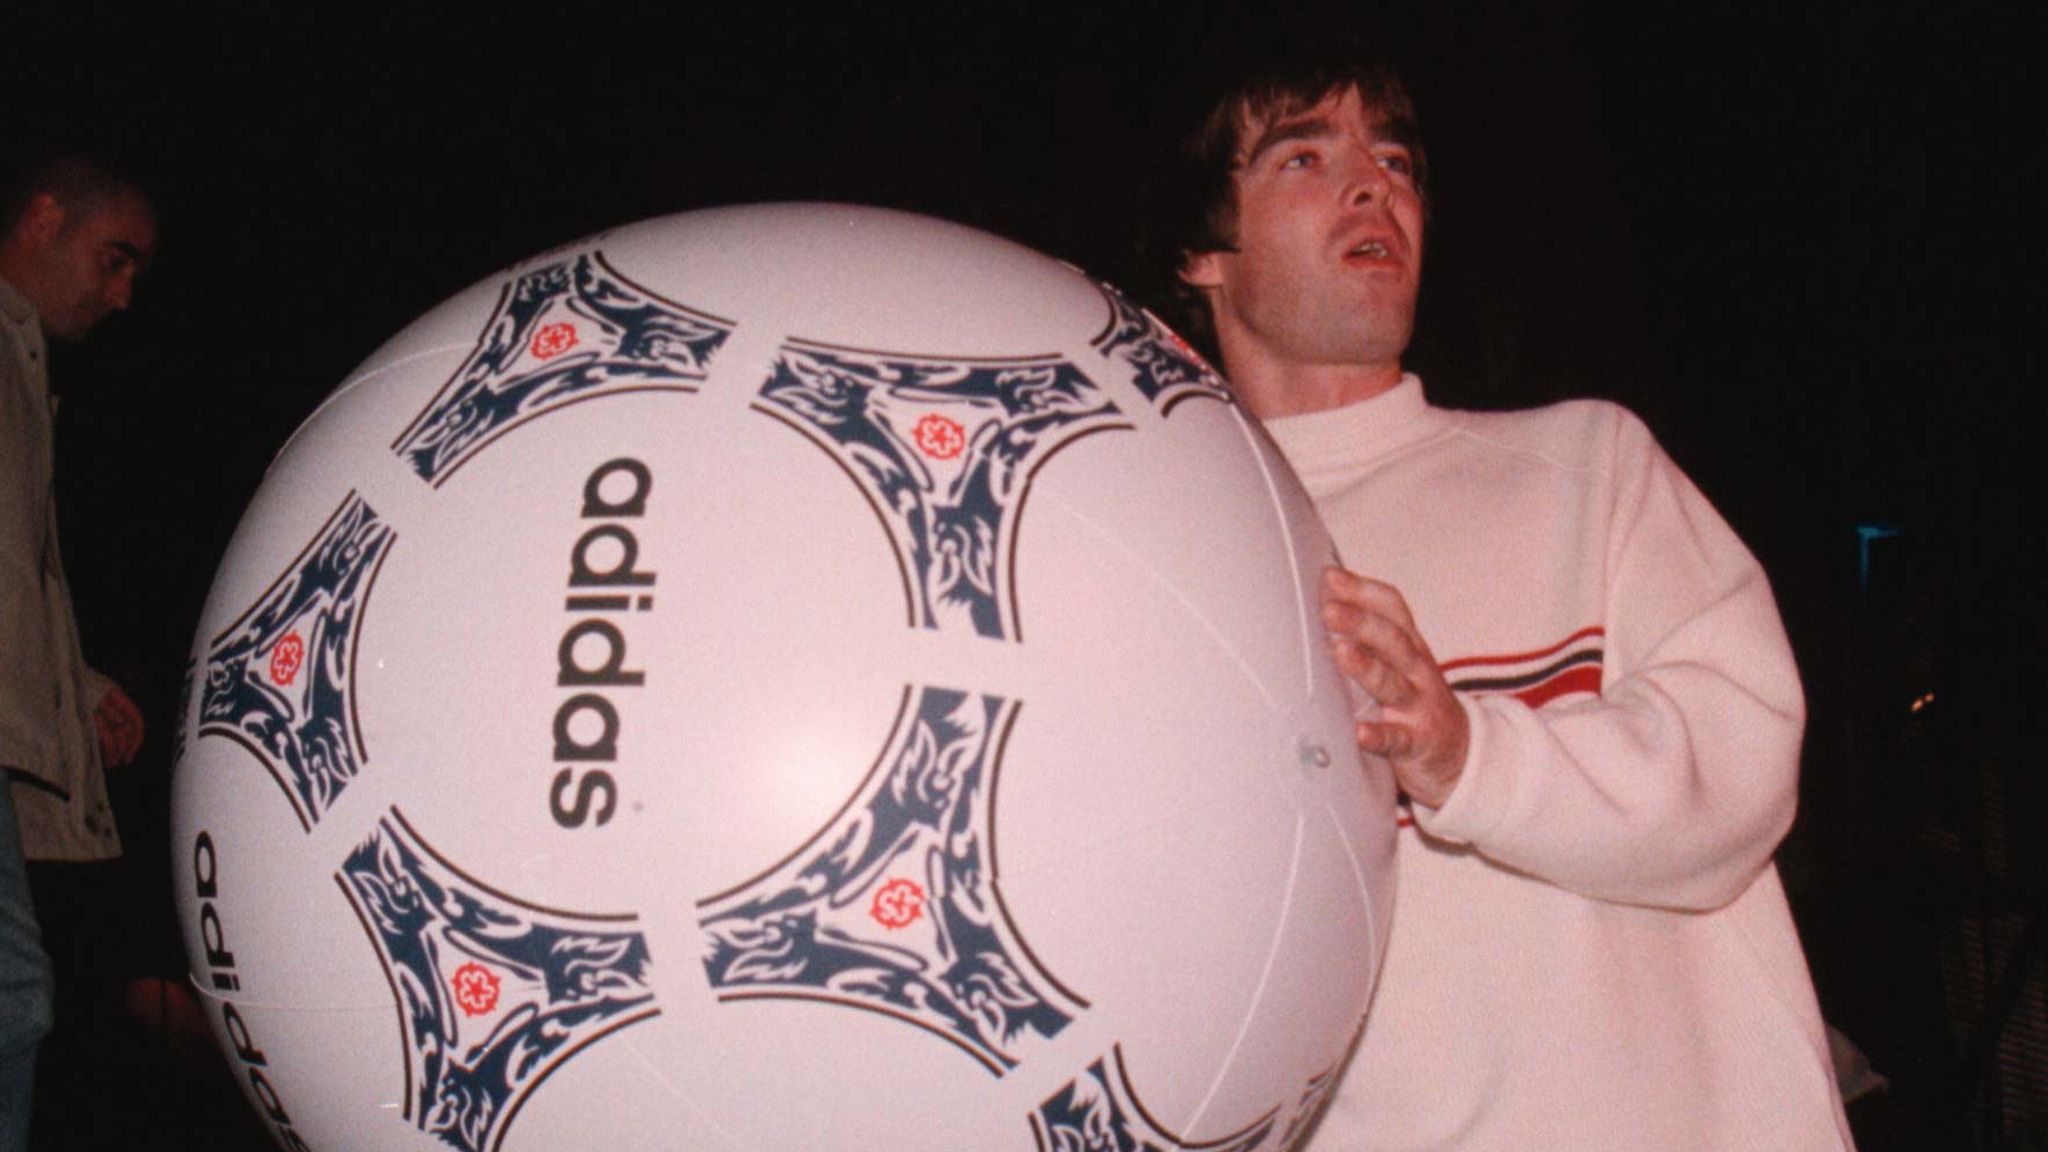 Noel Gallagher of Oasis throws a giant football into the audience during their concert at Knebworth Park in Hertfordshire in August 1996